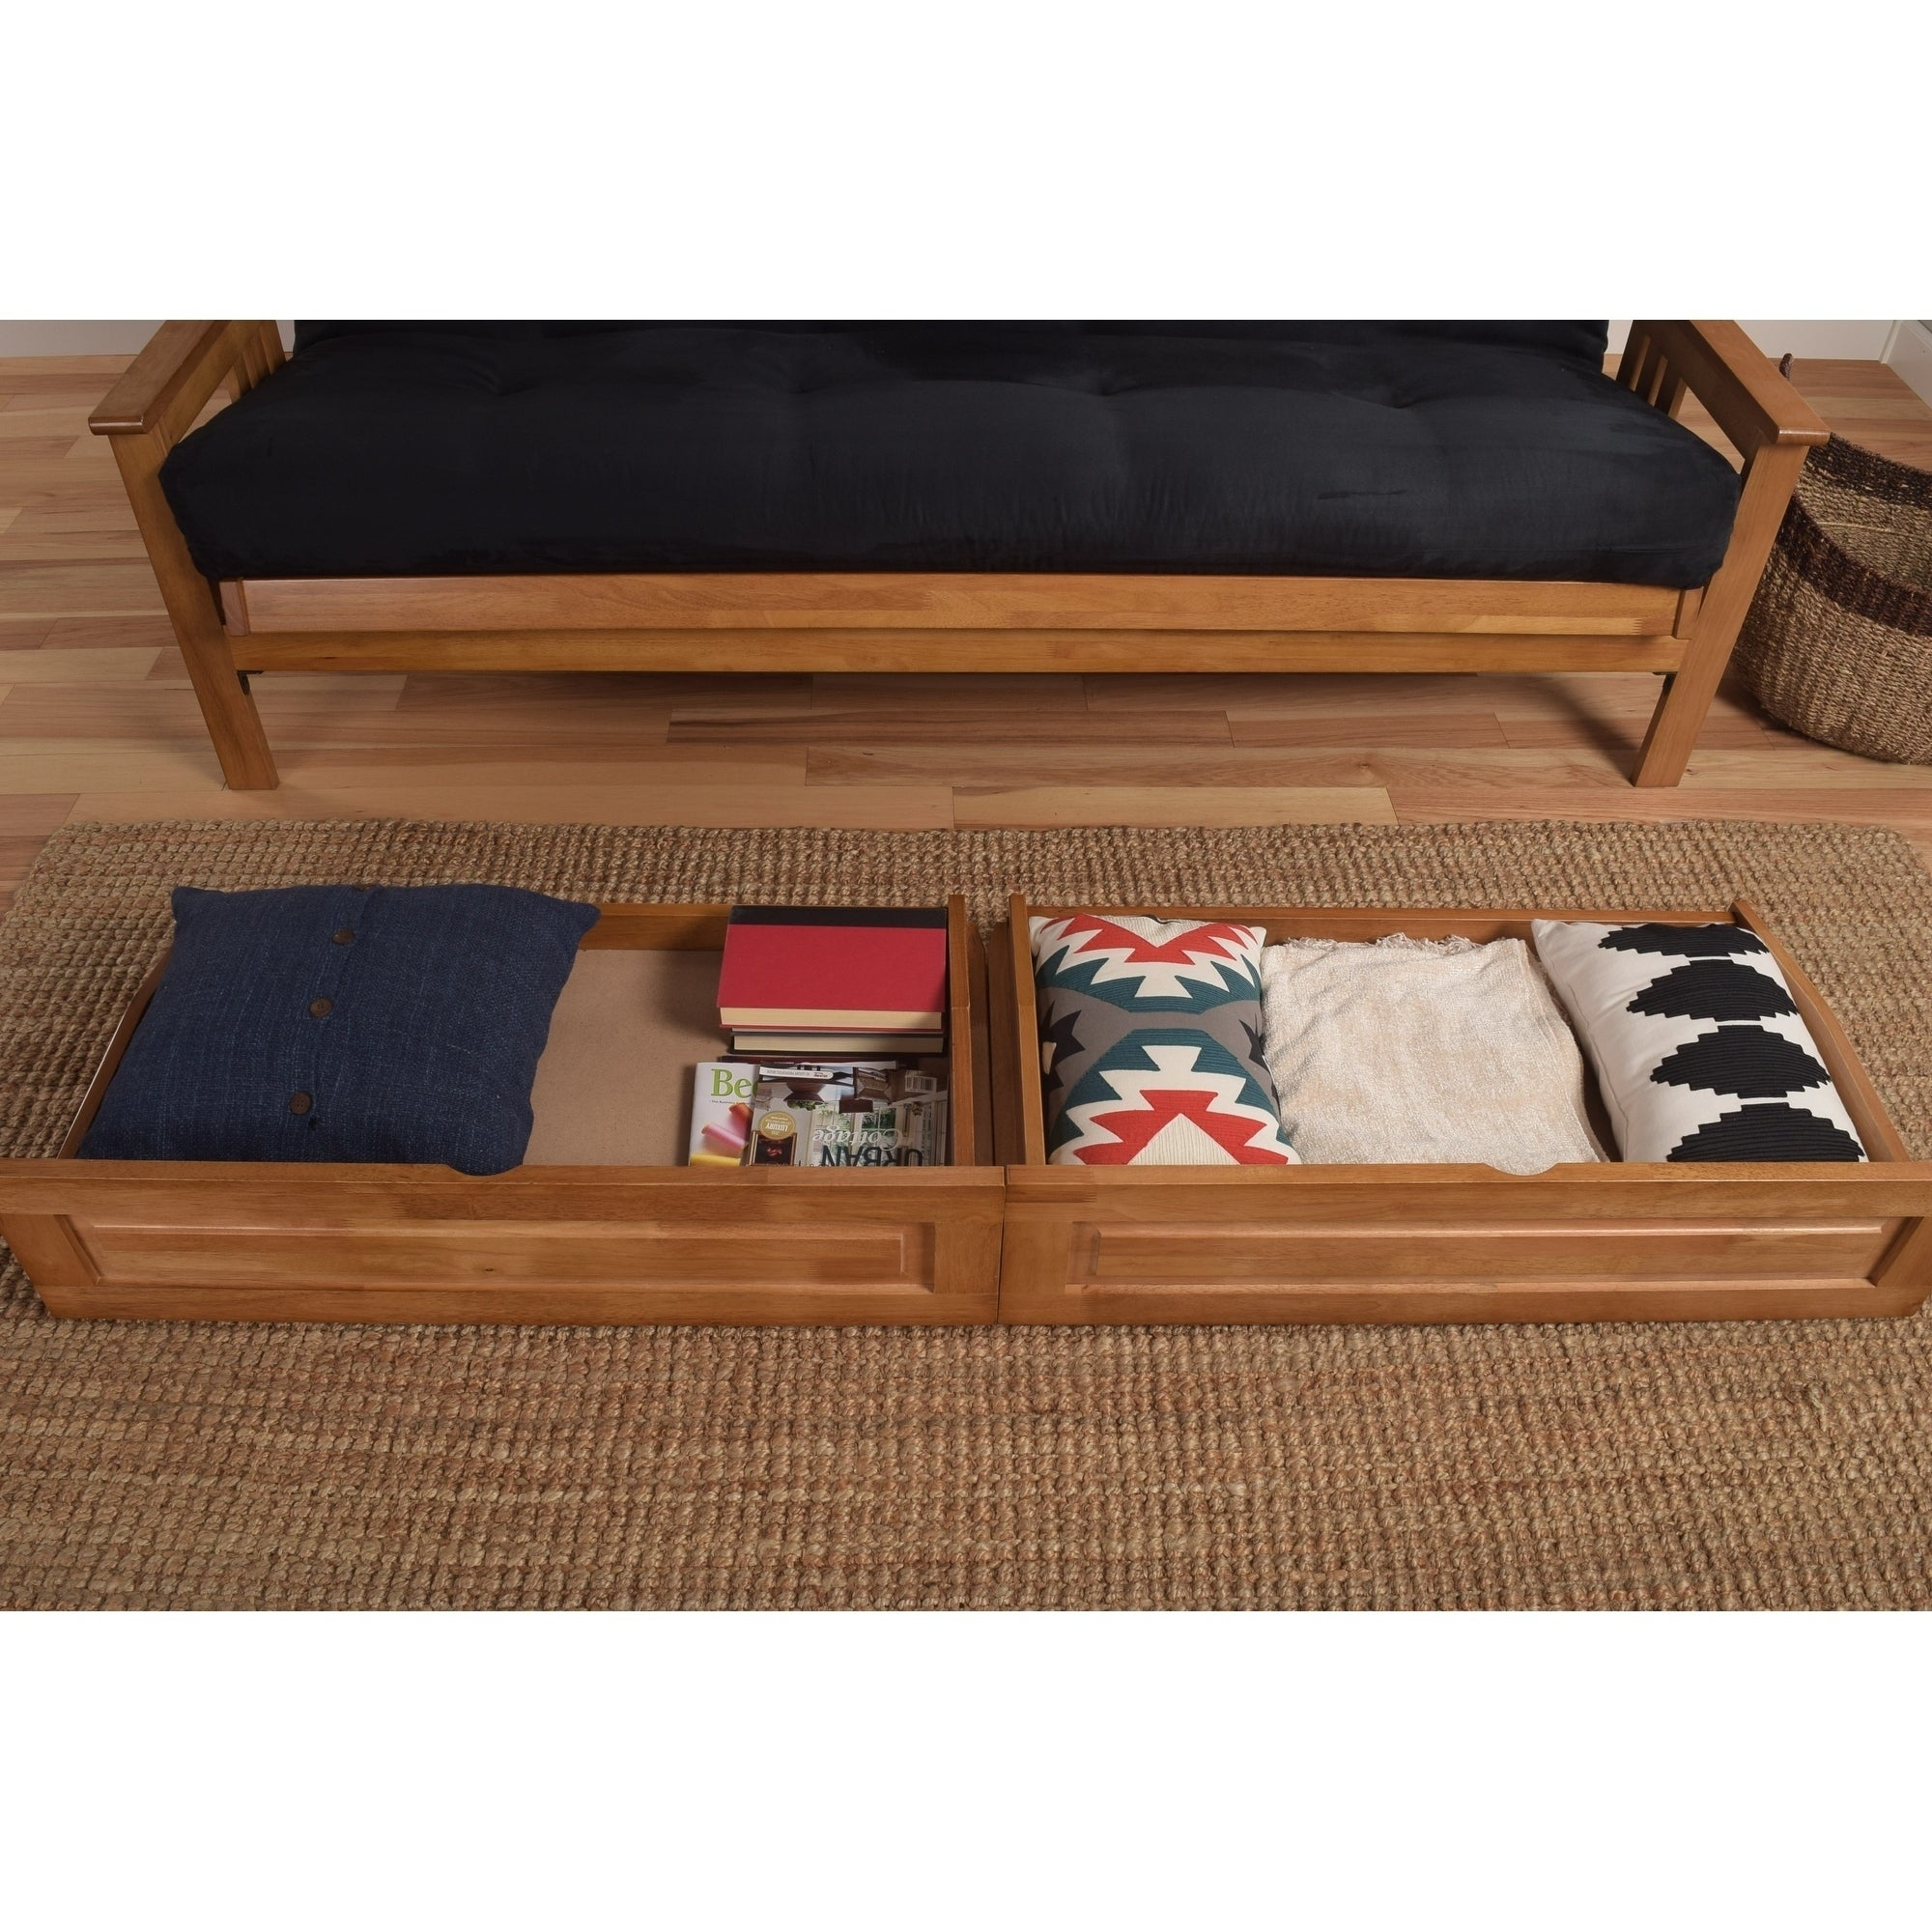 Porch Den Dent Full Size Futon Storage Drawers